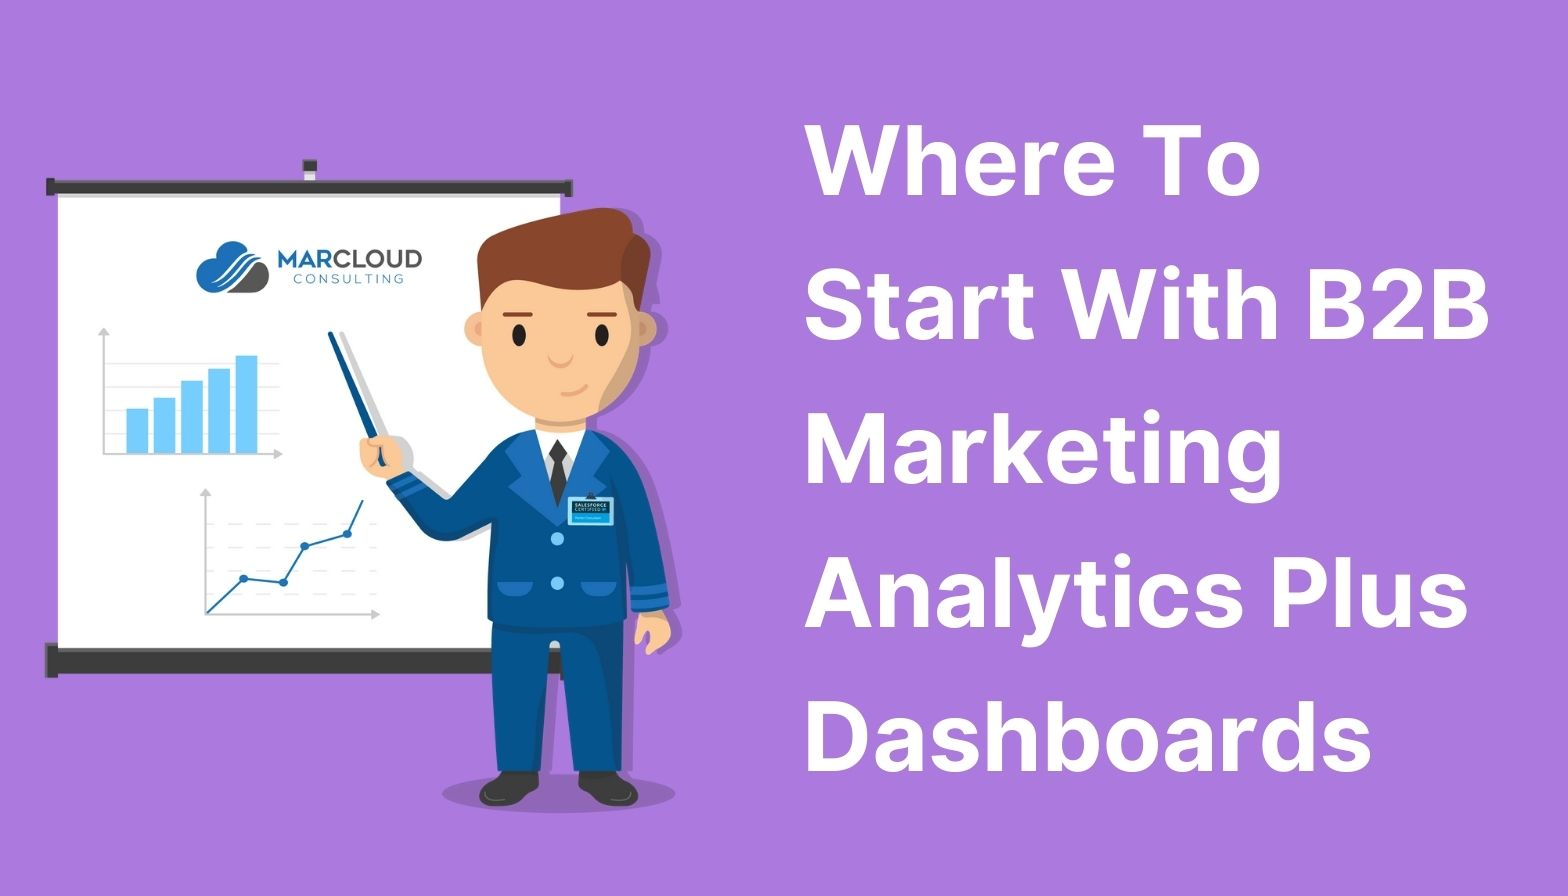 Where to start with B2B Marketing Analytics Plus dashboards